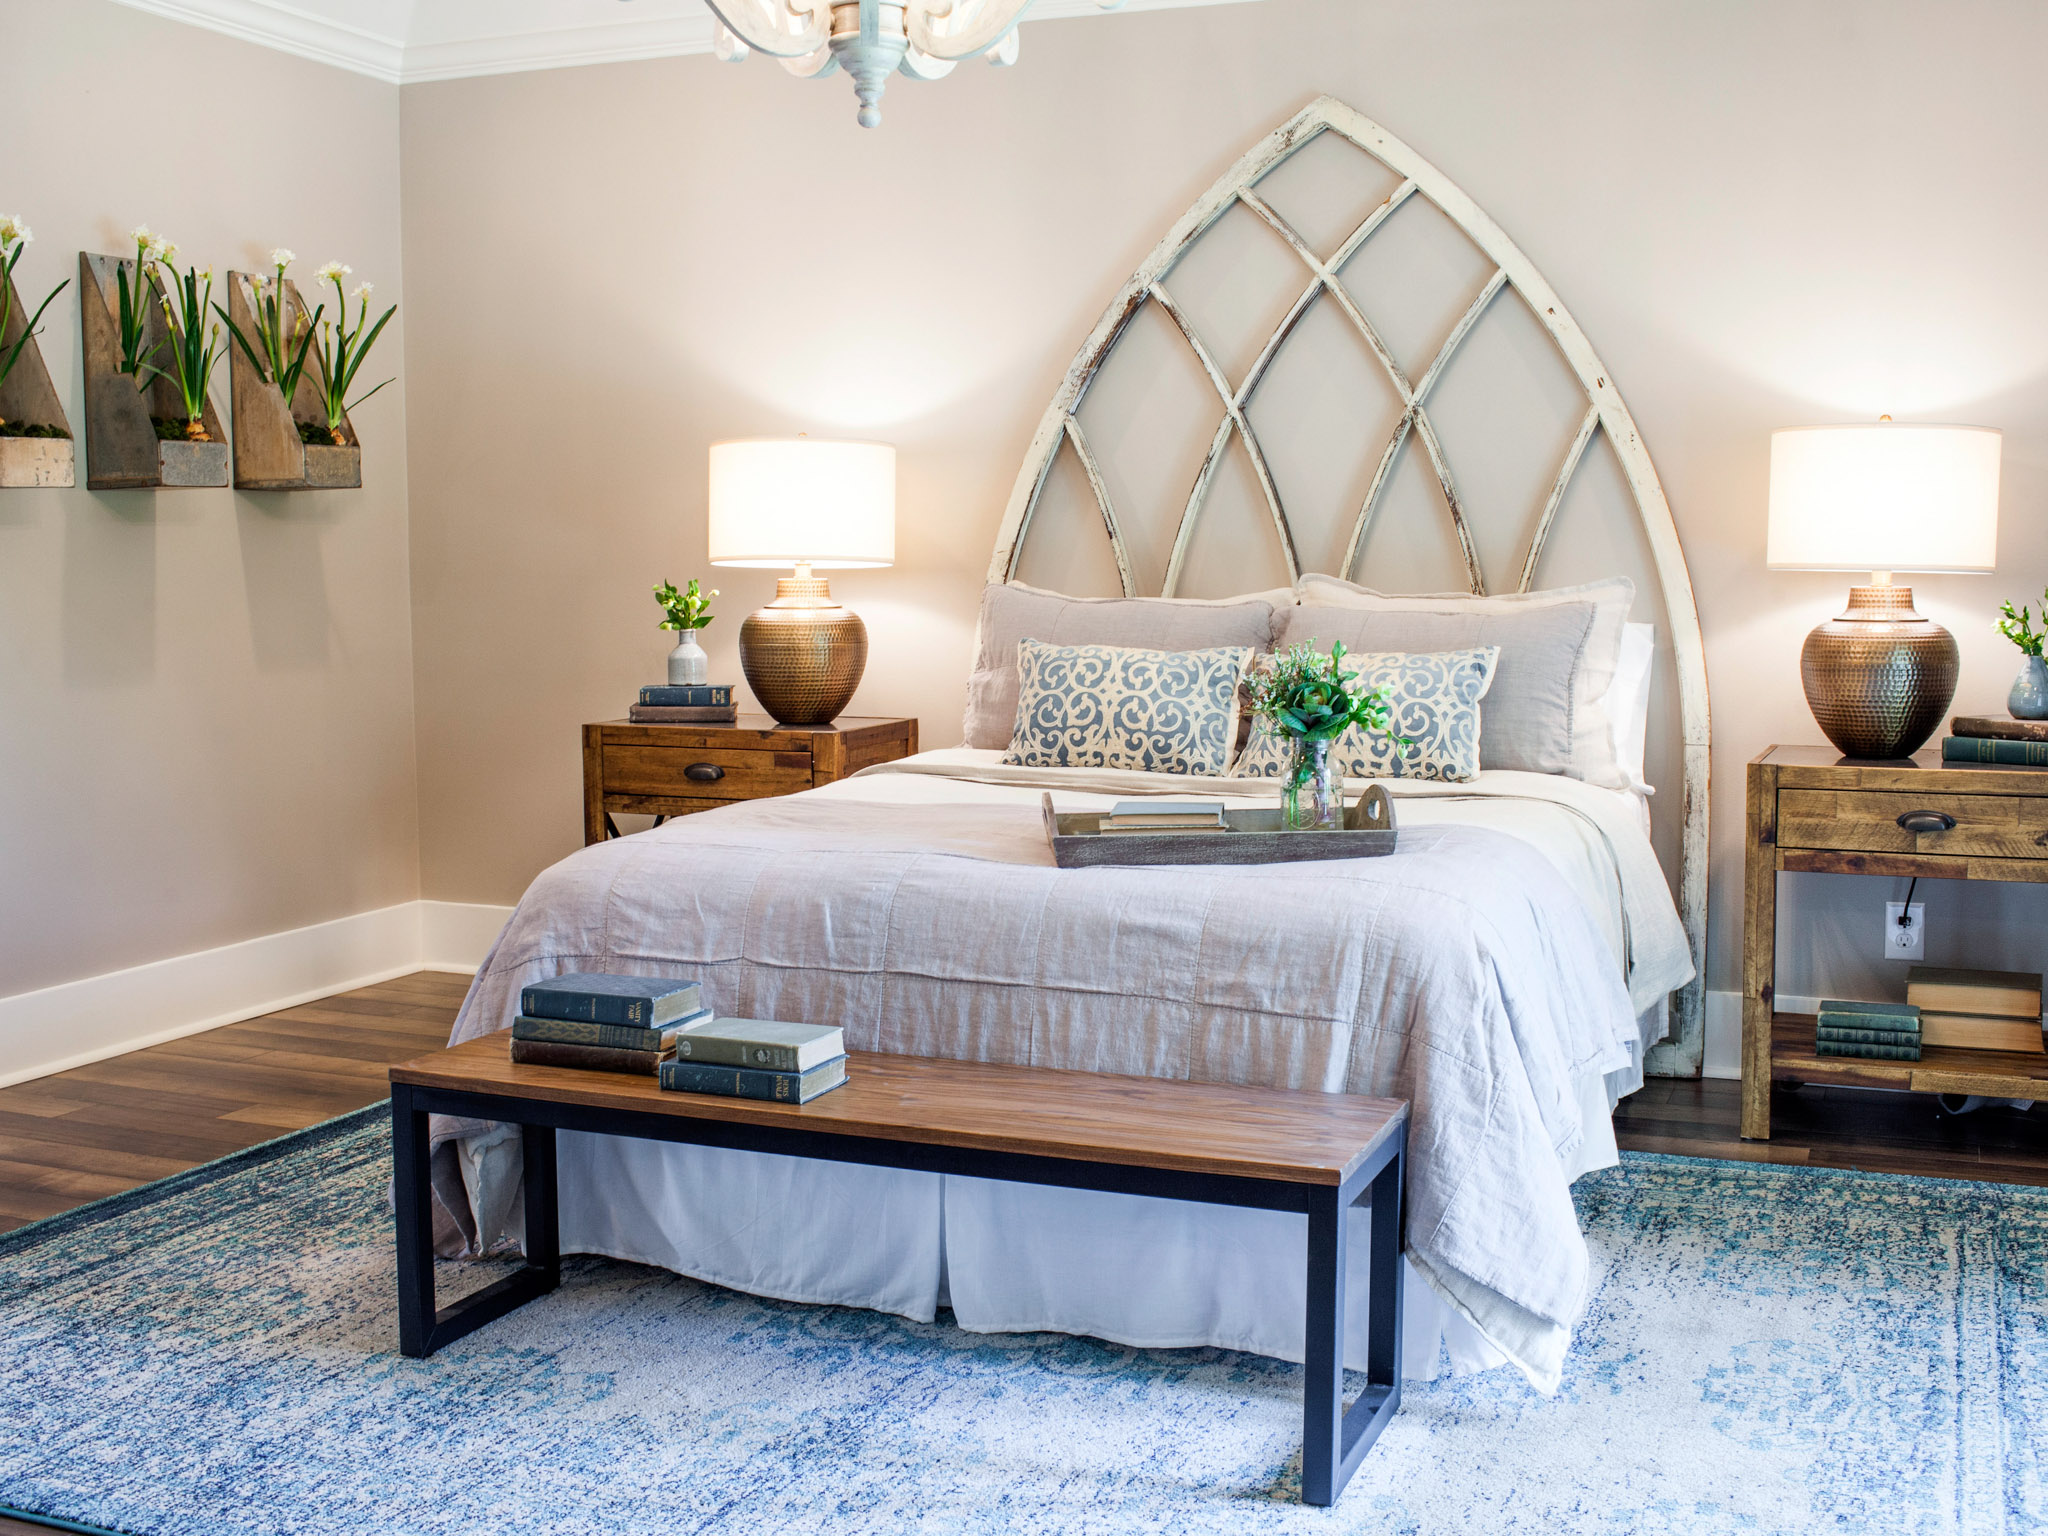 Top 10 Fixer Upper Bedrooms  Daily Dose of Style